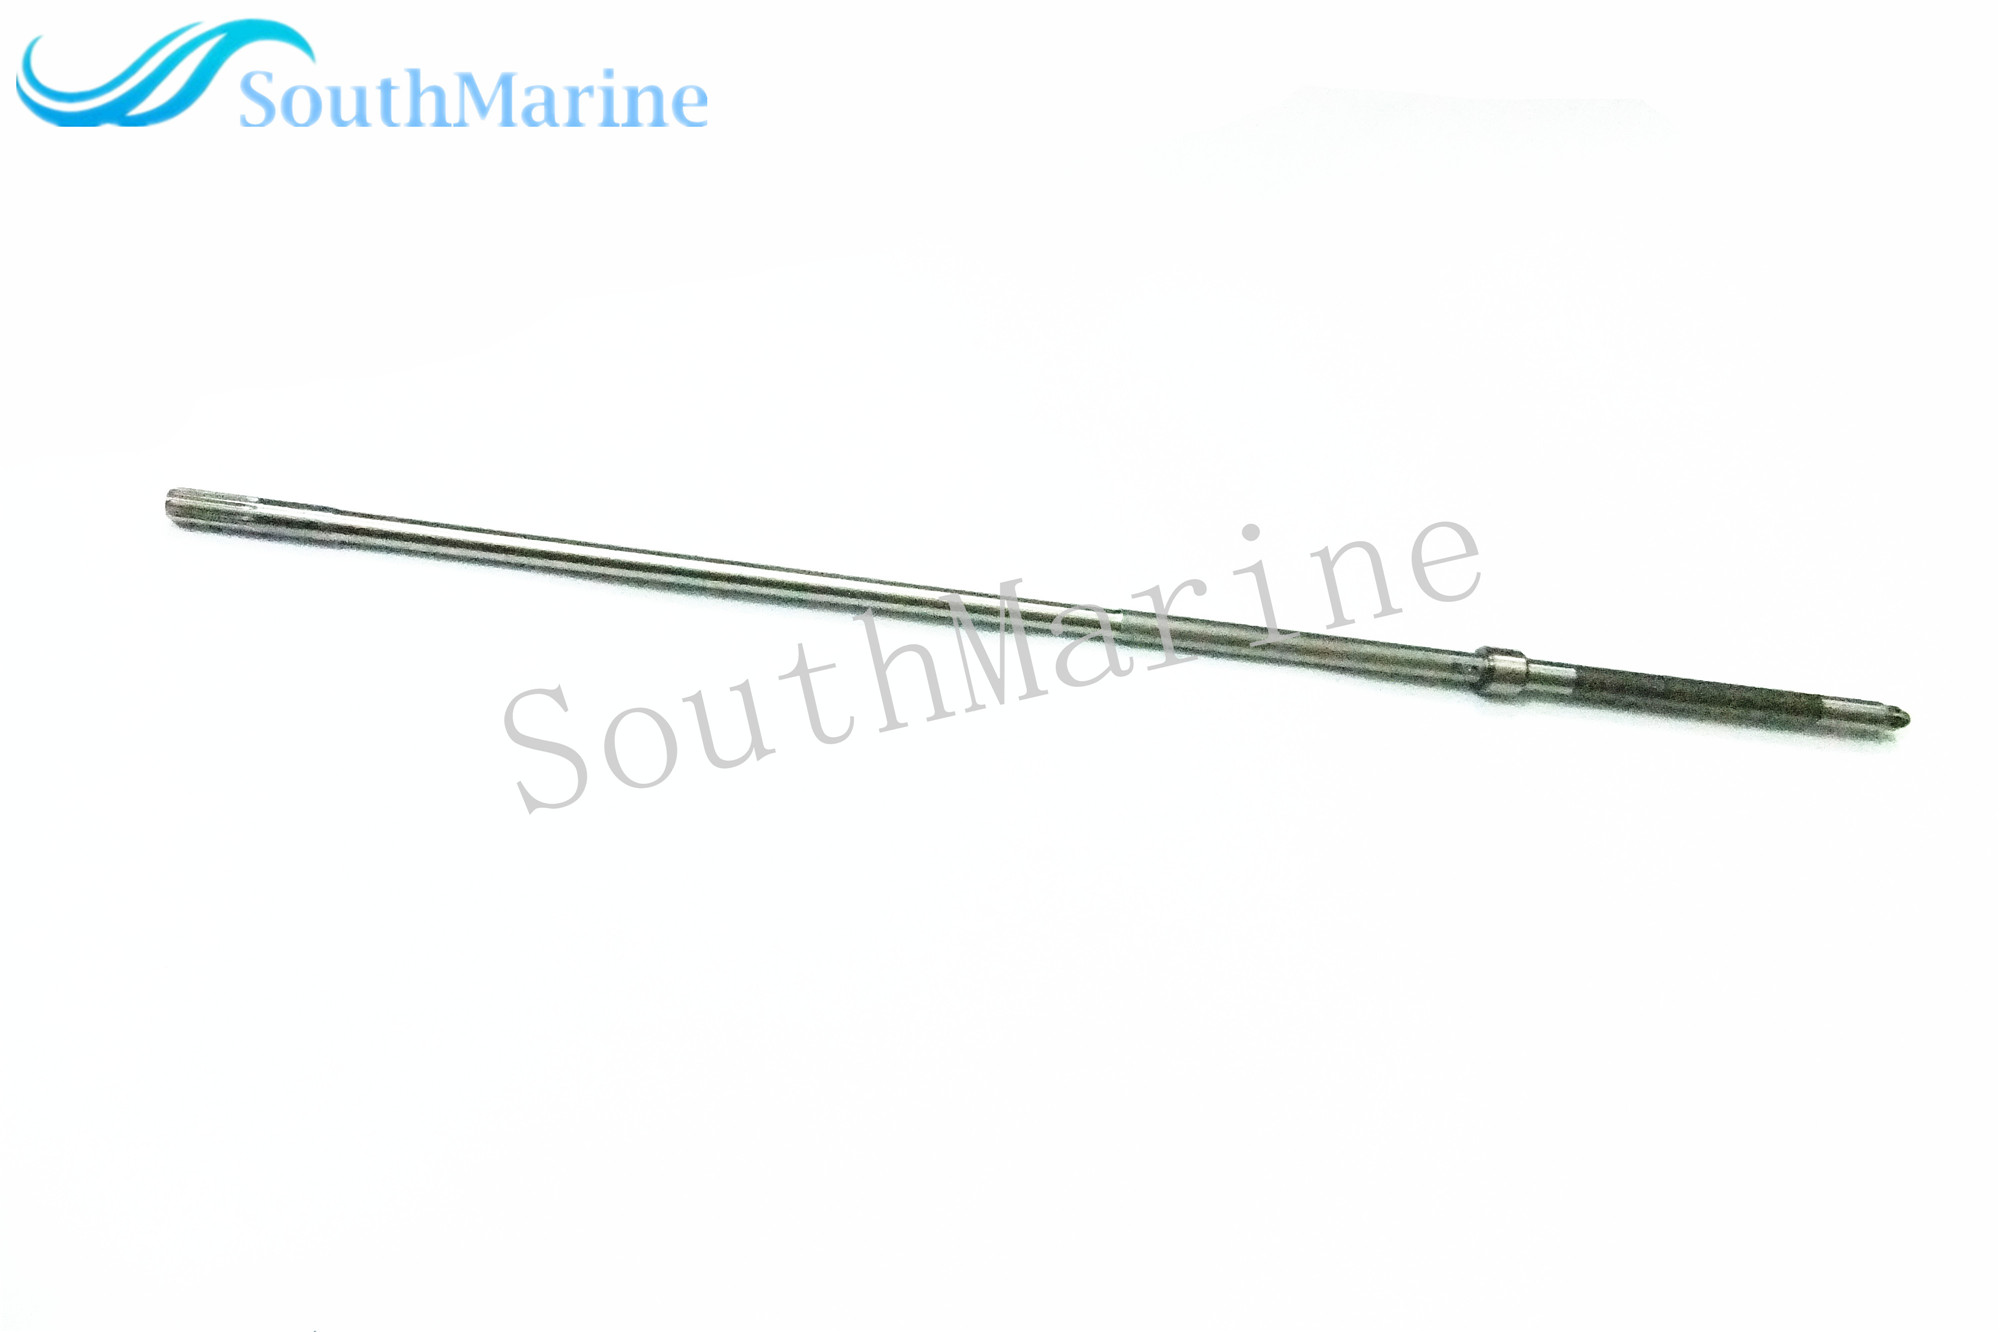 63V-45510-11 Long Drive Shaft for Outboard Engine Yamaha 4-Stroke F15 Boat Motor